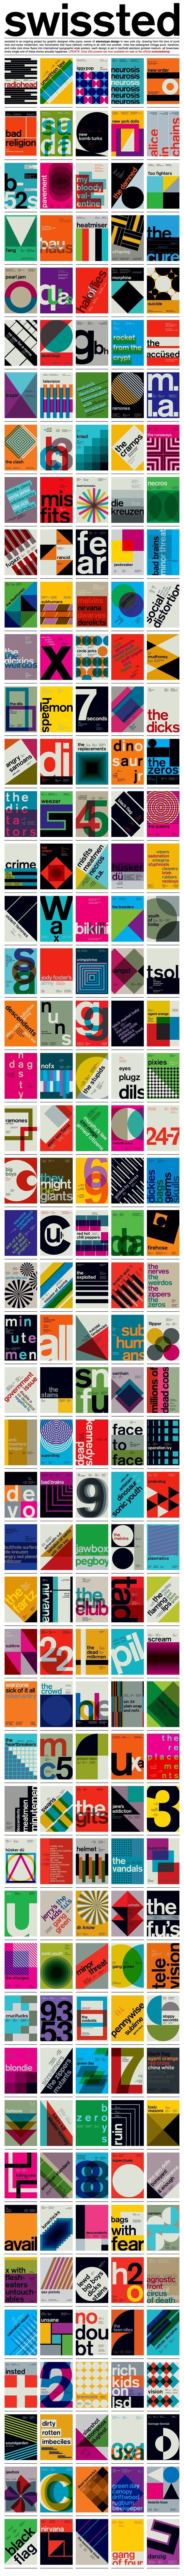 swissted is an ongoing project by graphic designer mike joyce. drawing from his love of punk rock and swiss modernism, two movements that have (almost) nothing to do with one another, mike has redesigned vintage punk, hardcore, new wave, and indie rock show flyers into international typographic style posters. each design is set in lowercase berthold akzidenz-grotesk medium (not helvetica).: